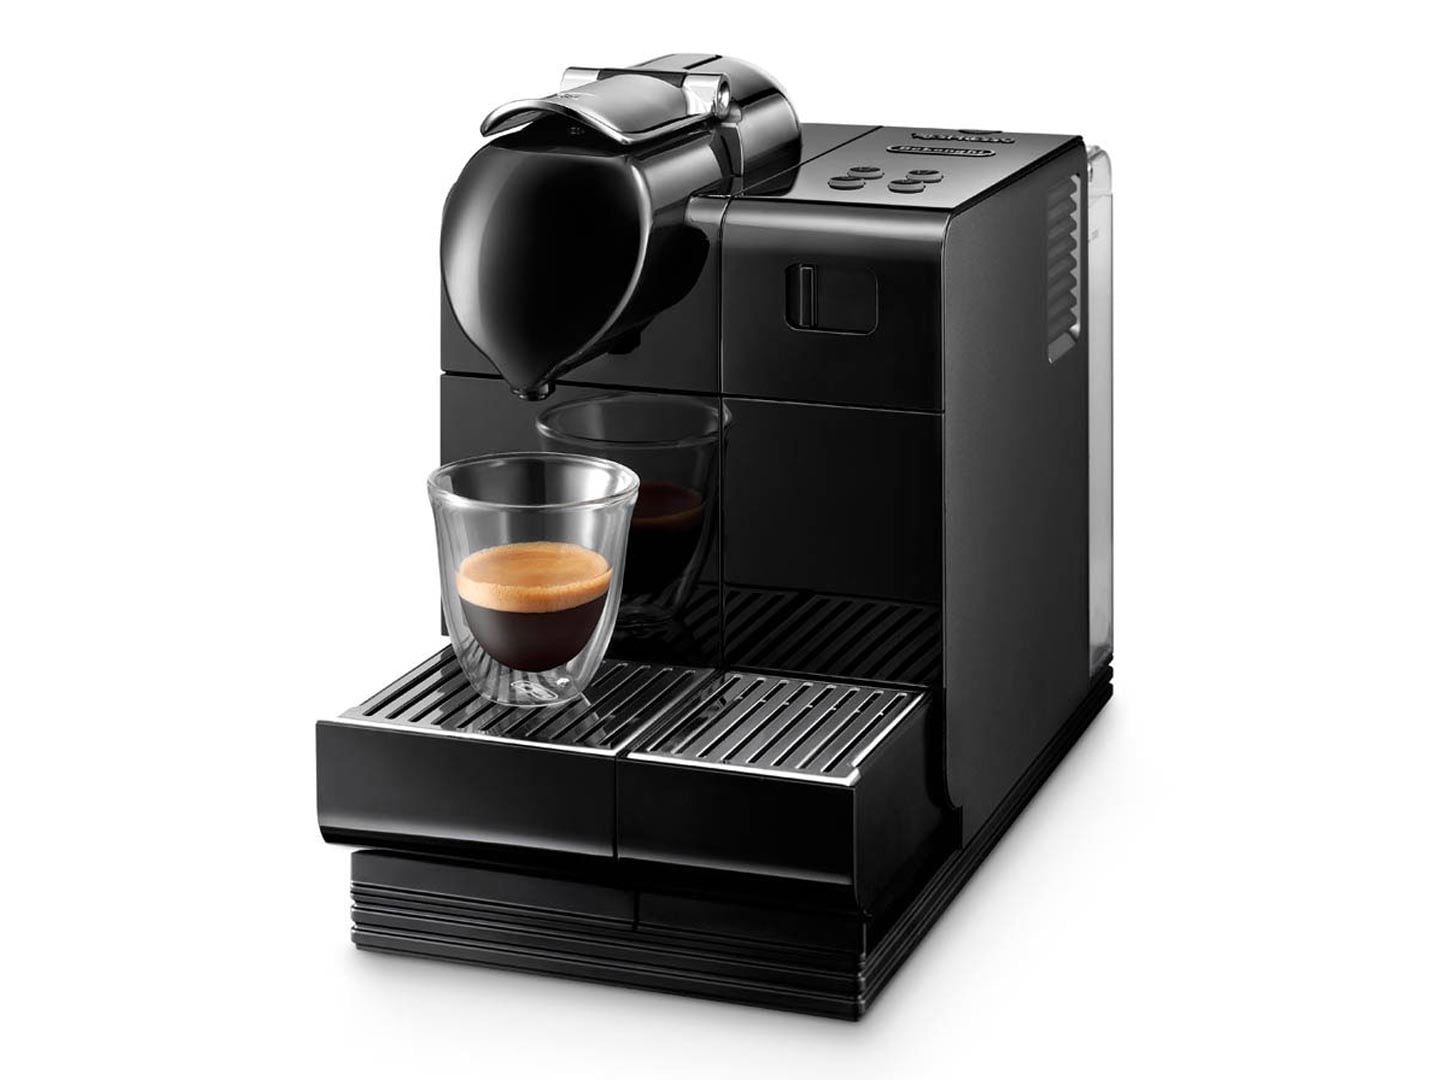 www nespresso com detartrage elegant apprenez dtartrer une machine nespresso with www nespresso. Black Bedroom Furniture Sets. Home Design Ideas